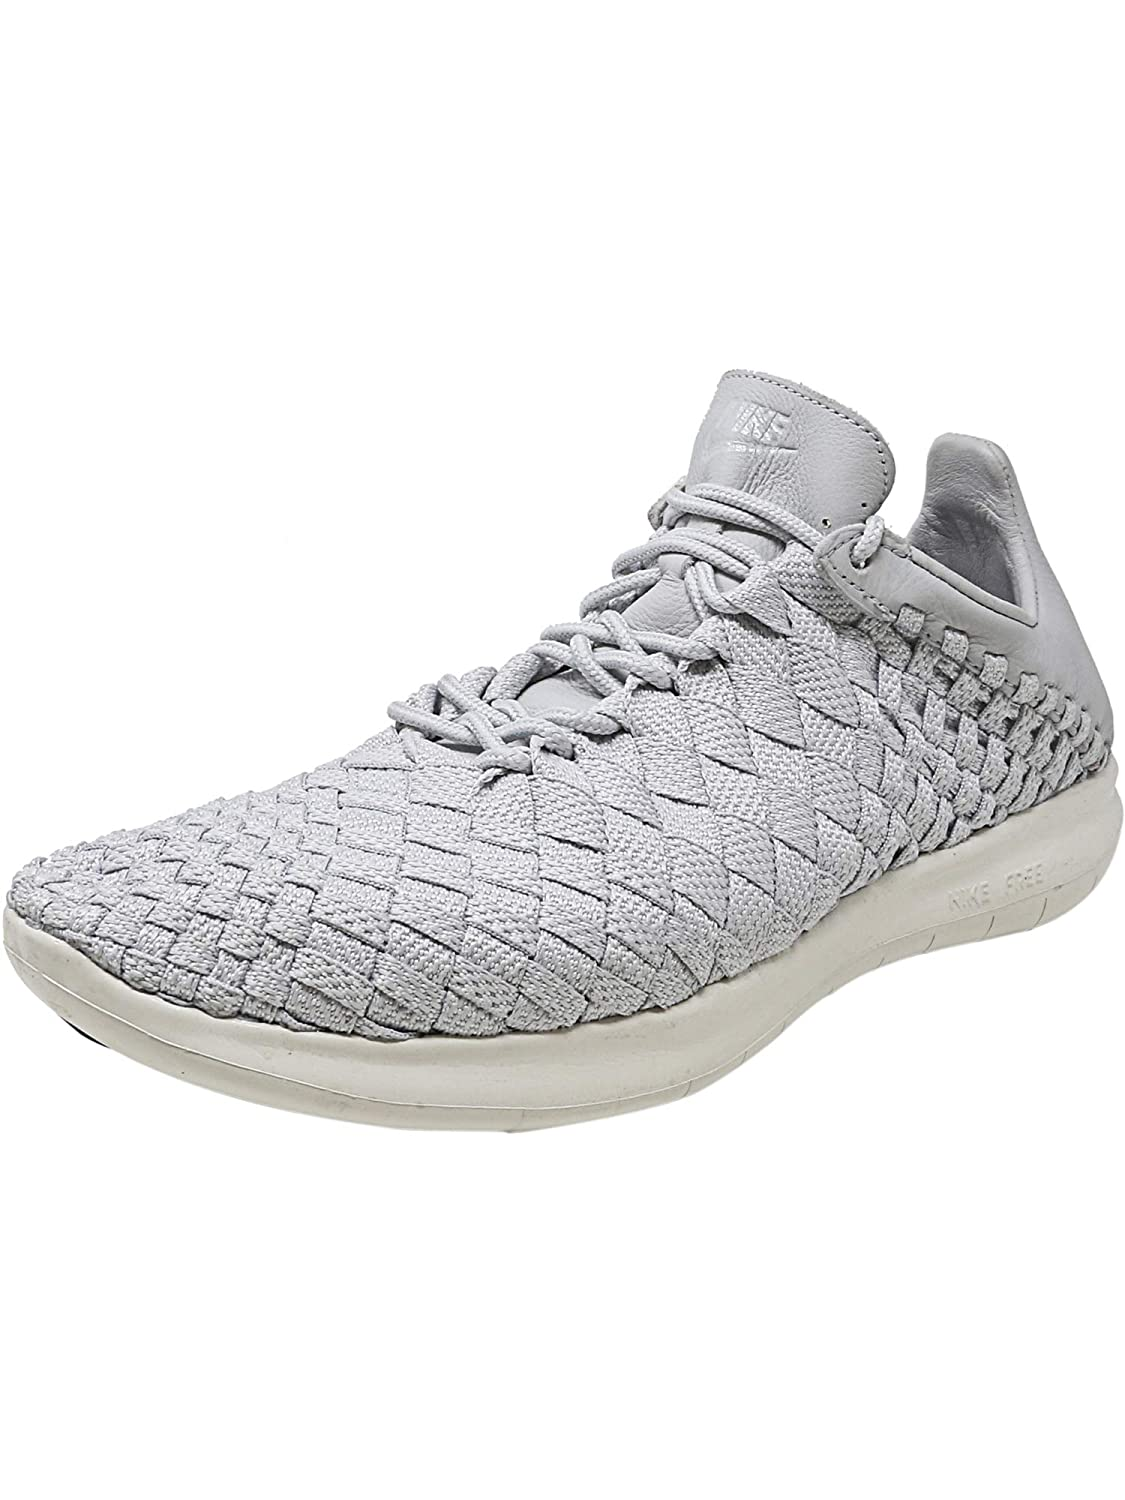 competitive price f7772 03043 Amazon.com   Nike Mens NikeLab Free Inneva Woven Motion Running Lightweight  Athletic Shoes   Athletic